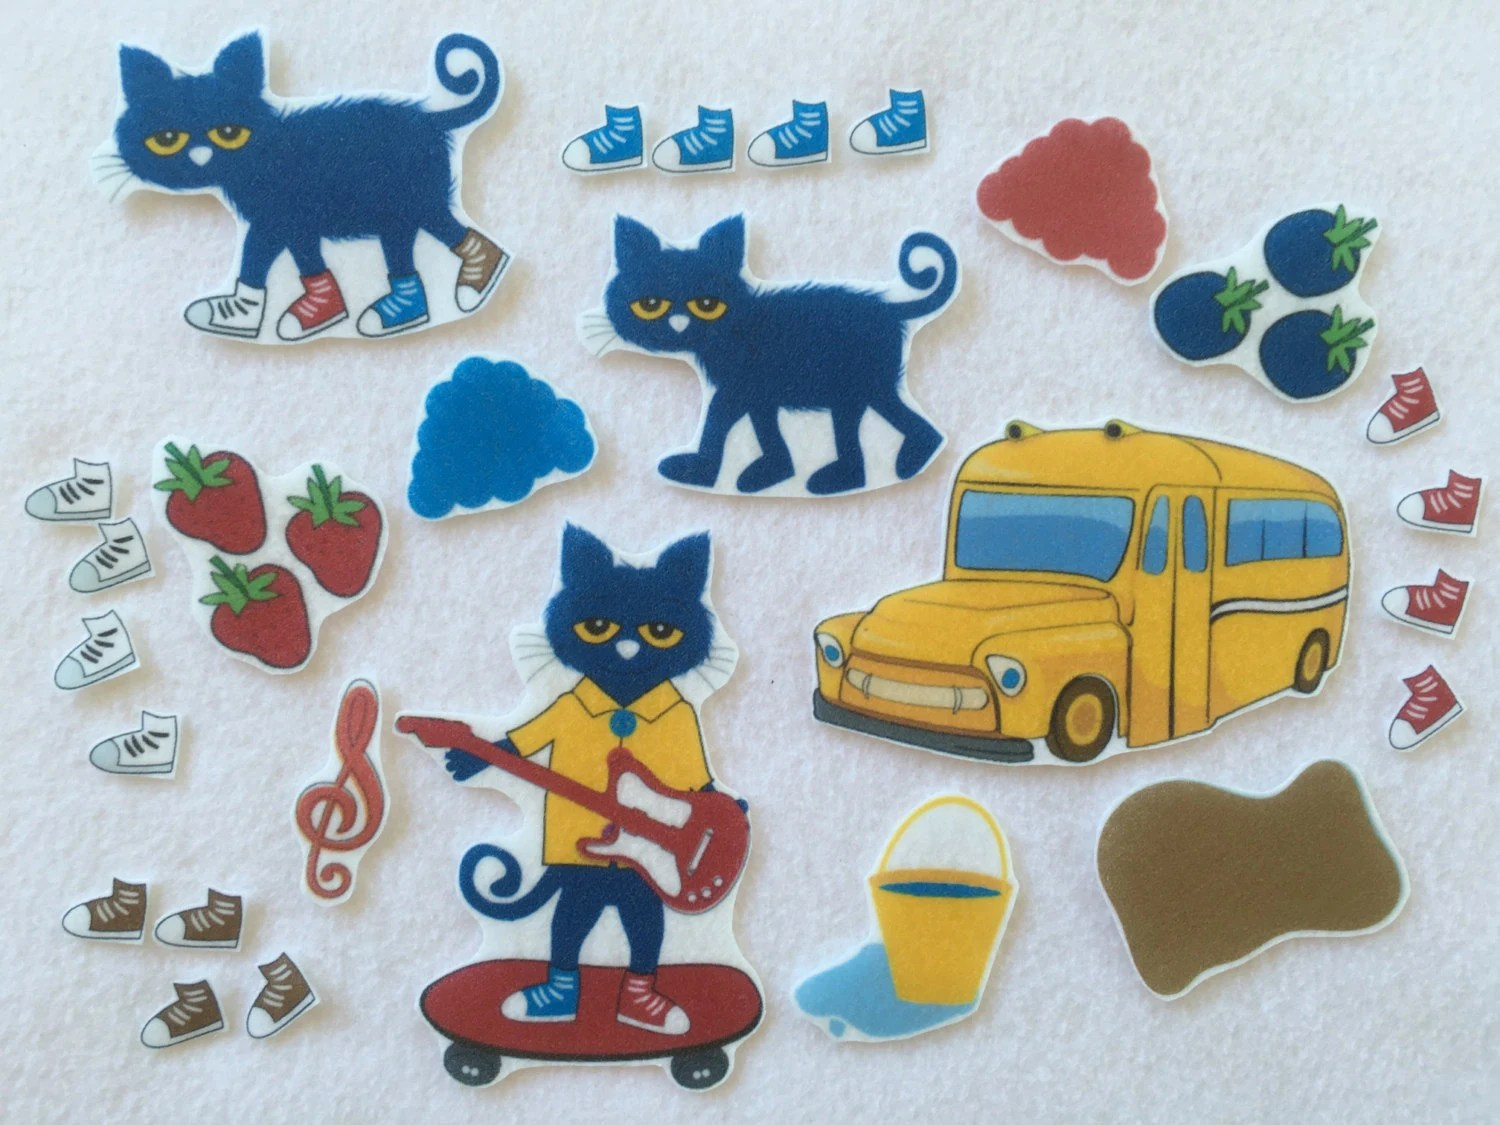 Pete The Cat I Love My White Shoes Felt Board Story